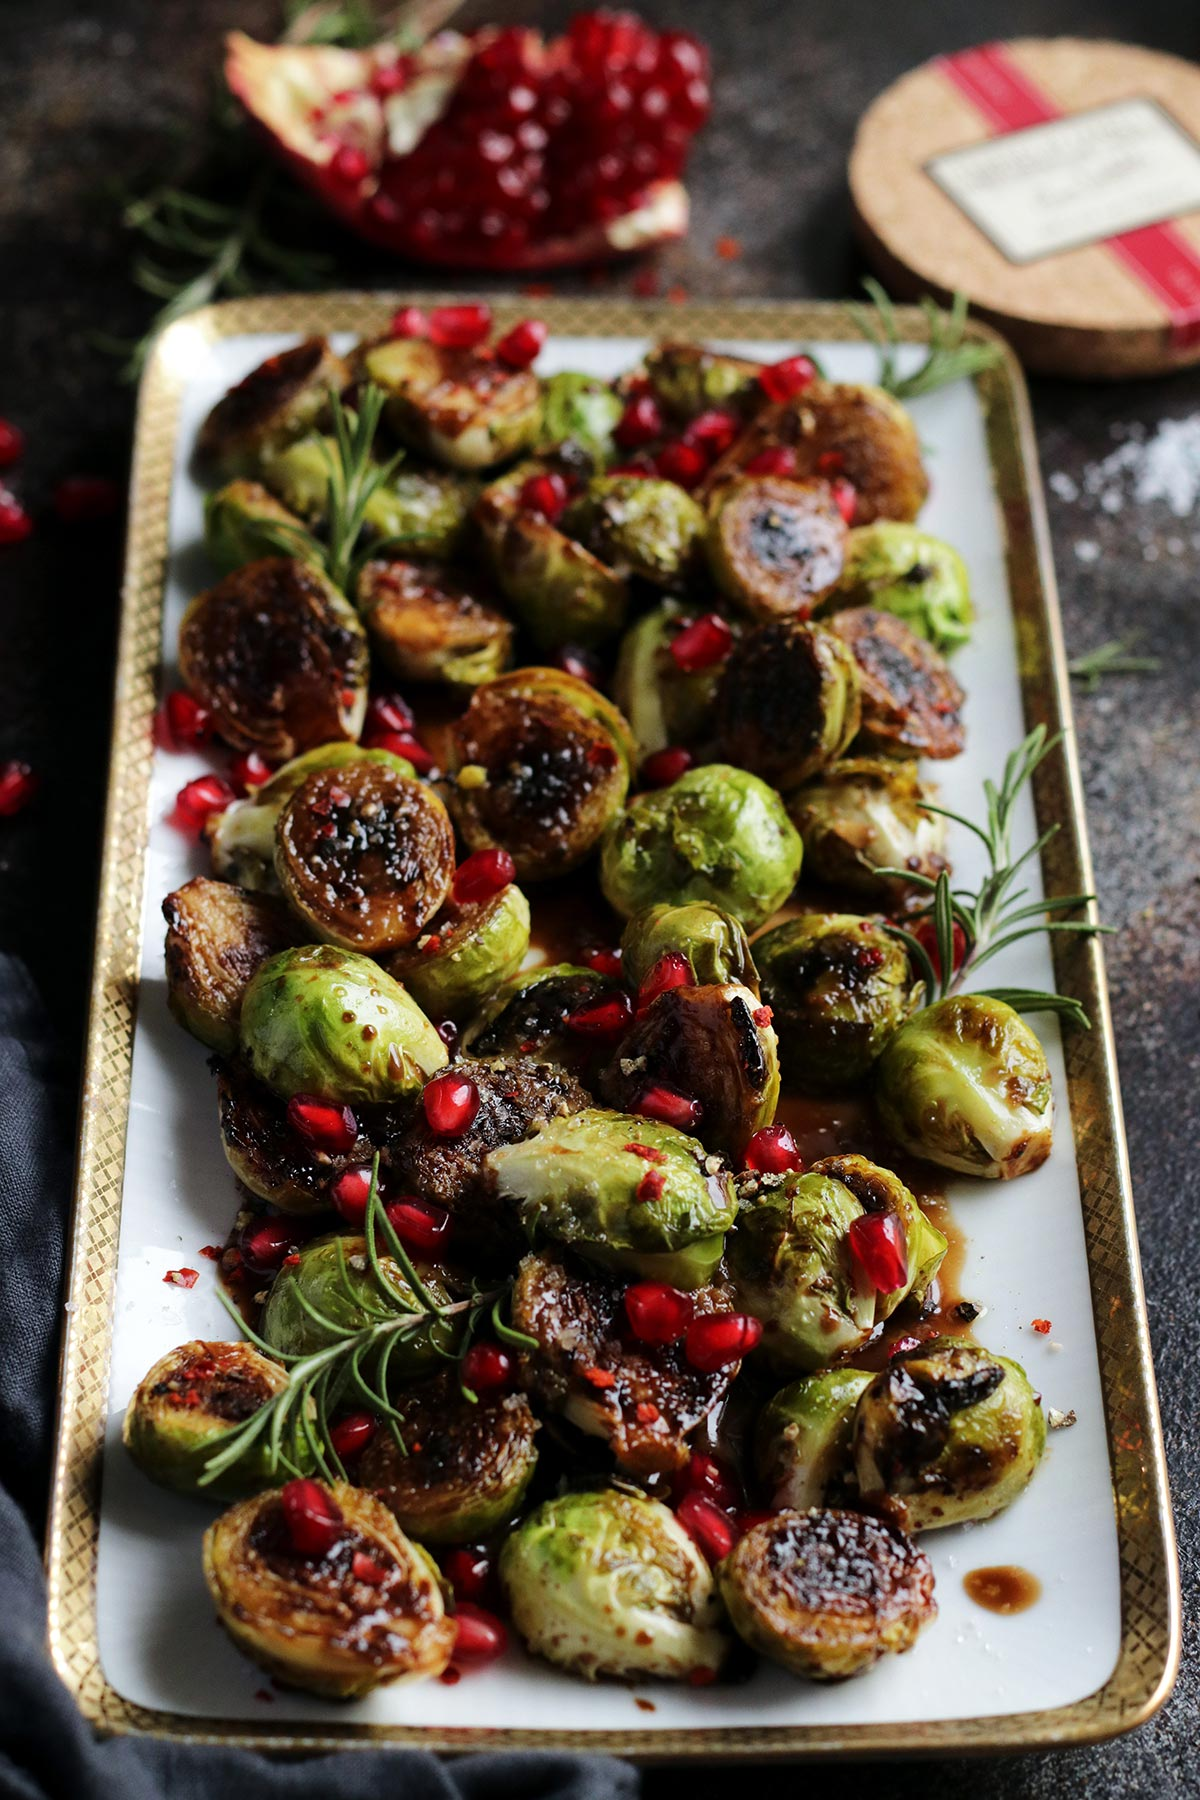 A Serving Dish with Brussels Sprouts.